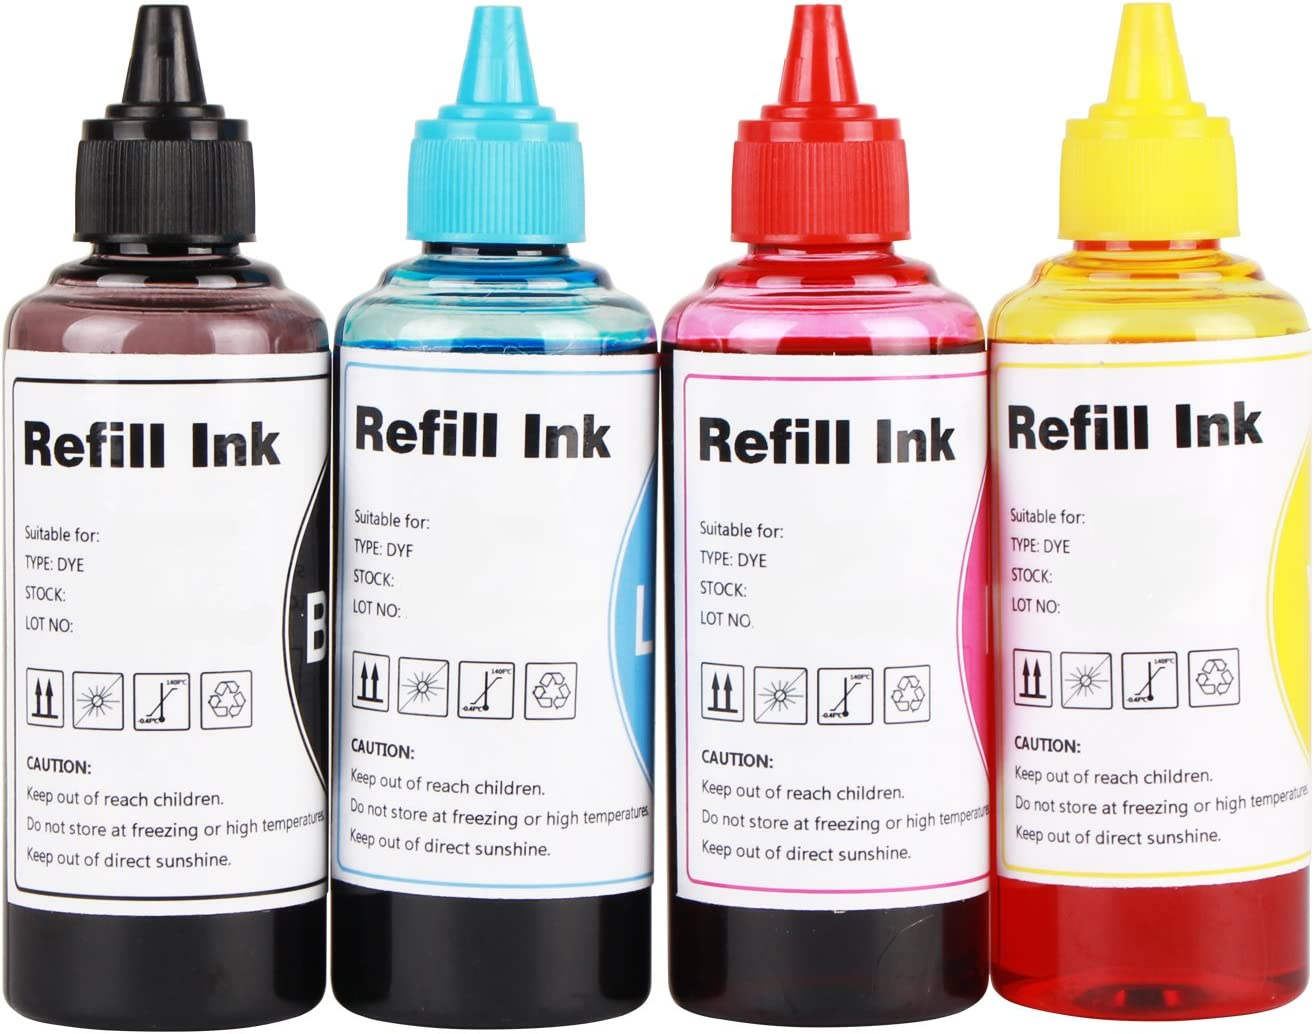 CoYlBod Refill Ink Kit for 950 951 950XL 951XL Officejet Pro 8100 8600 251dw 276dw 8610 8620 8630 8640 8650 8660 8515 8530 8615 8625 8635 8680 Printers, for Refillable Cartridges or CISS